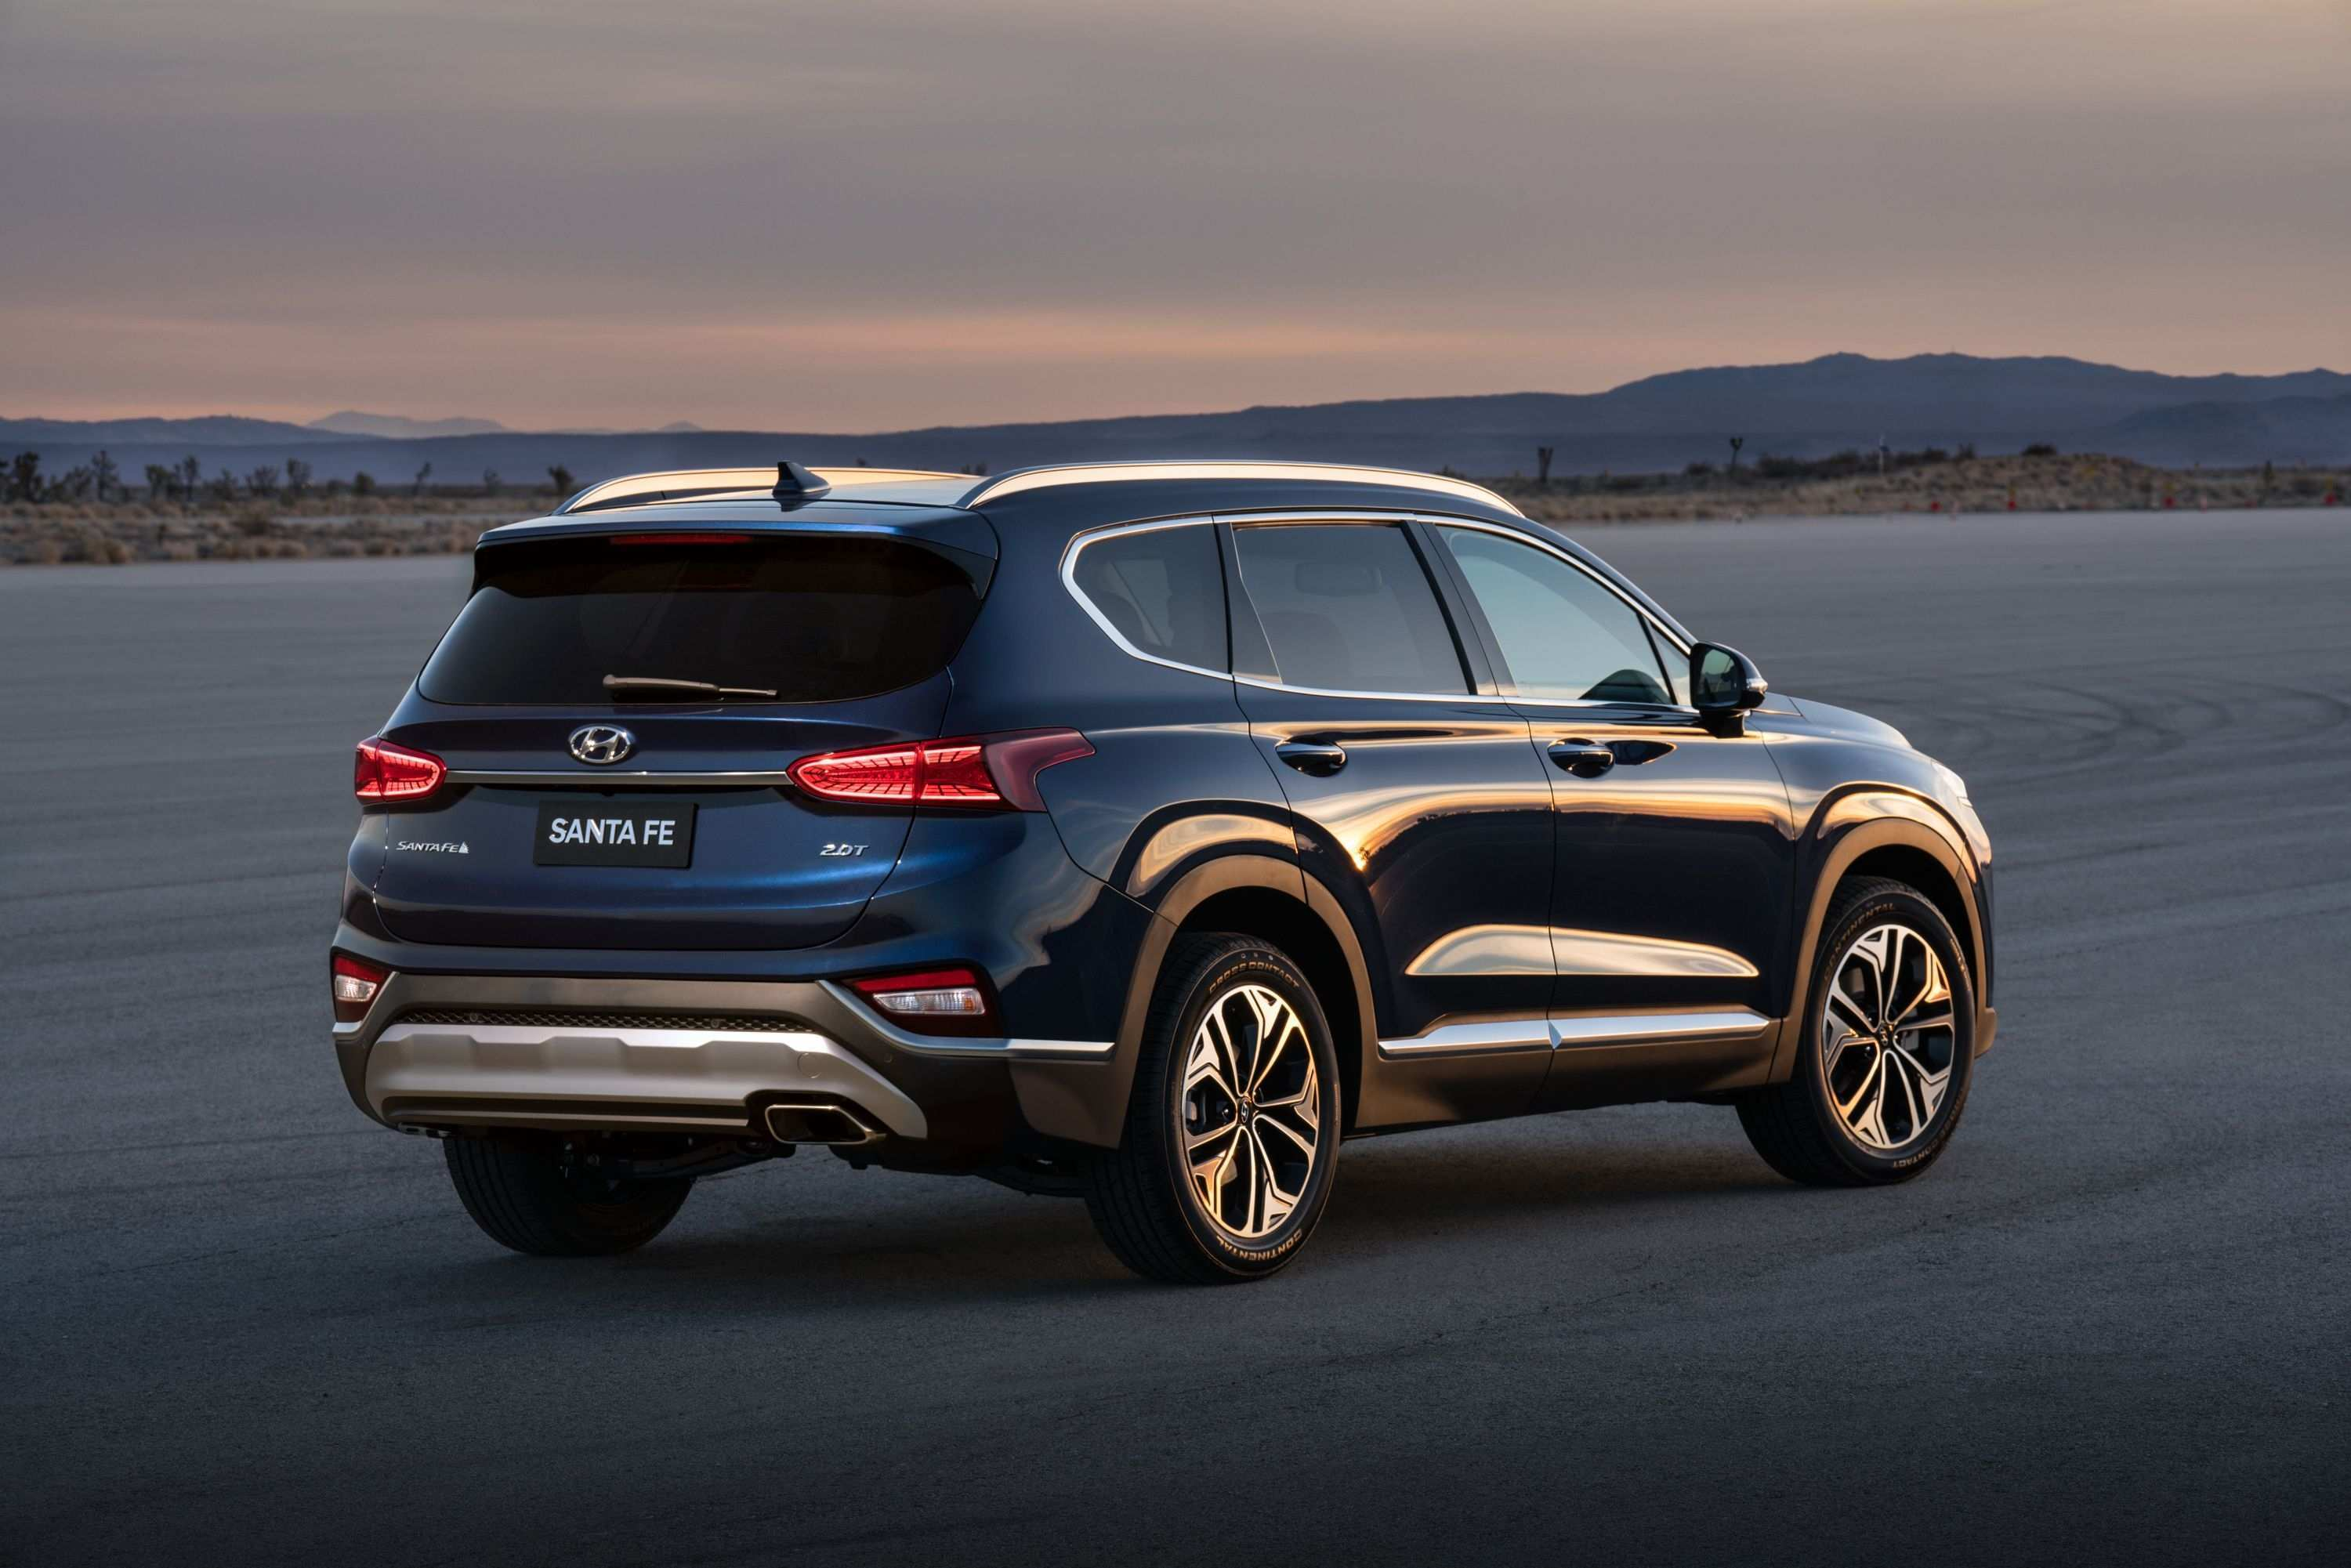 64 Best Review 2020 Santa Fe Sports Specs and Review with 2020 Santa Fe Sports